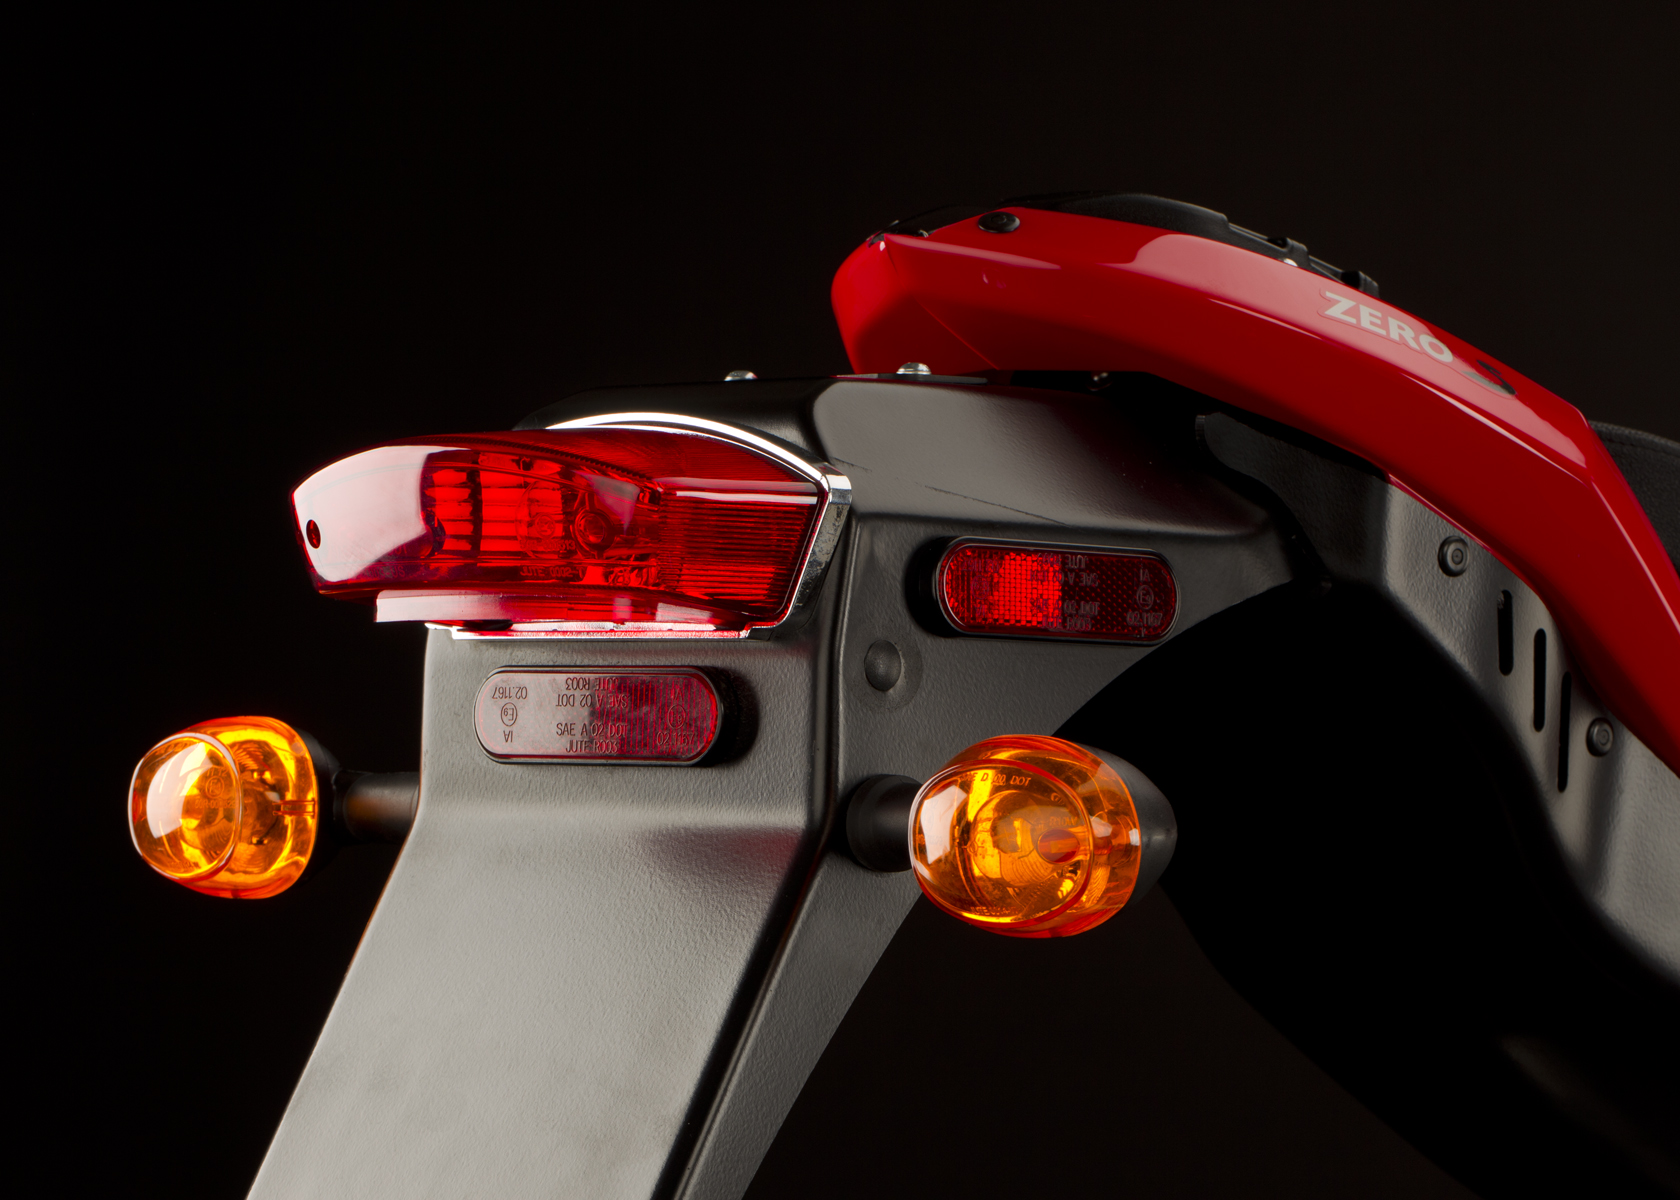 2011 Zero S Electric Motorcycle: Tail Lights